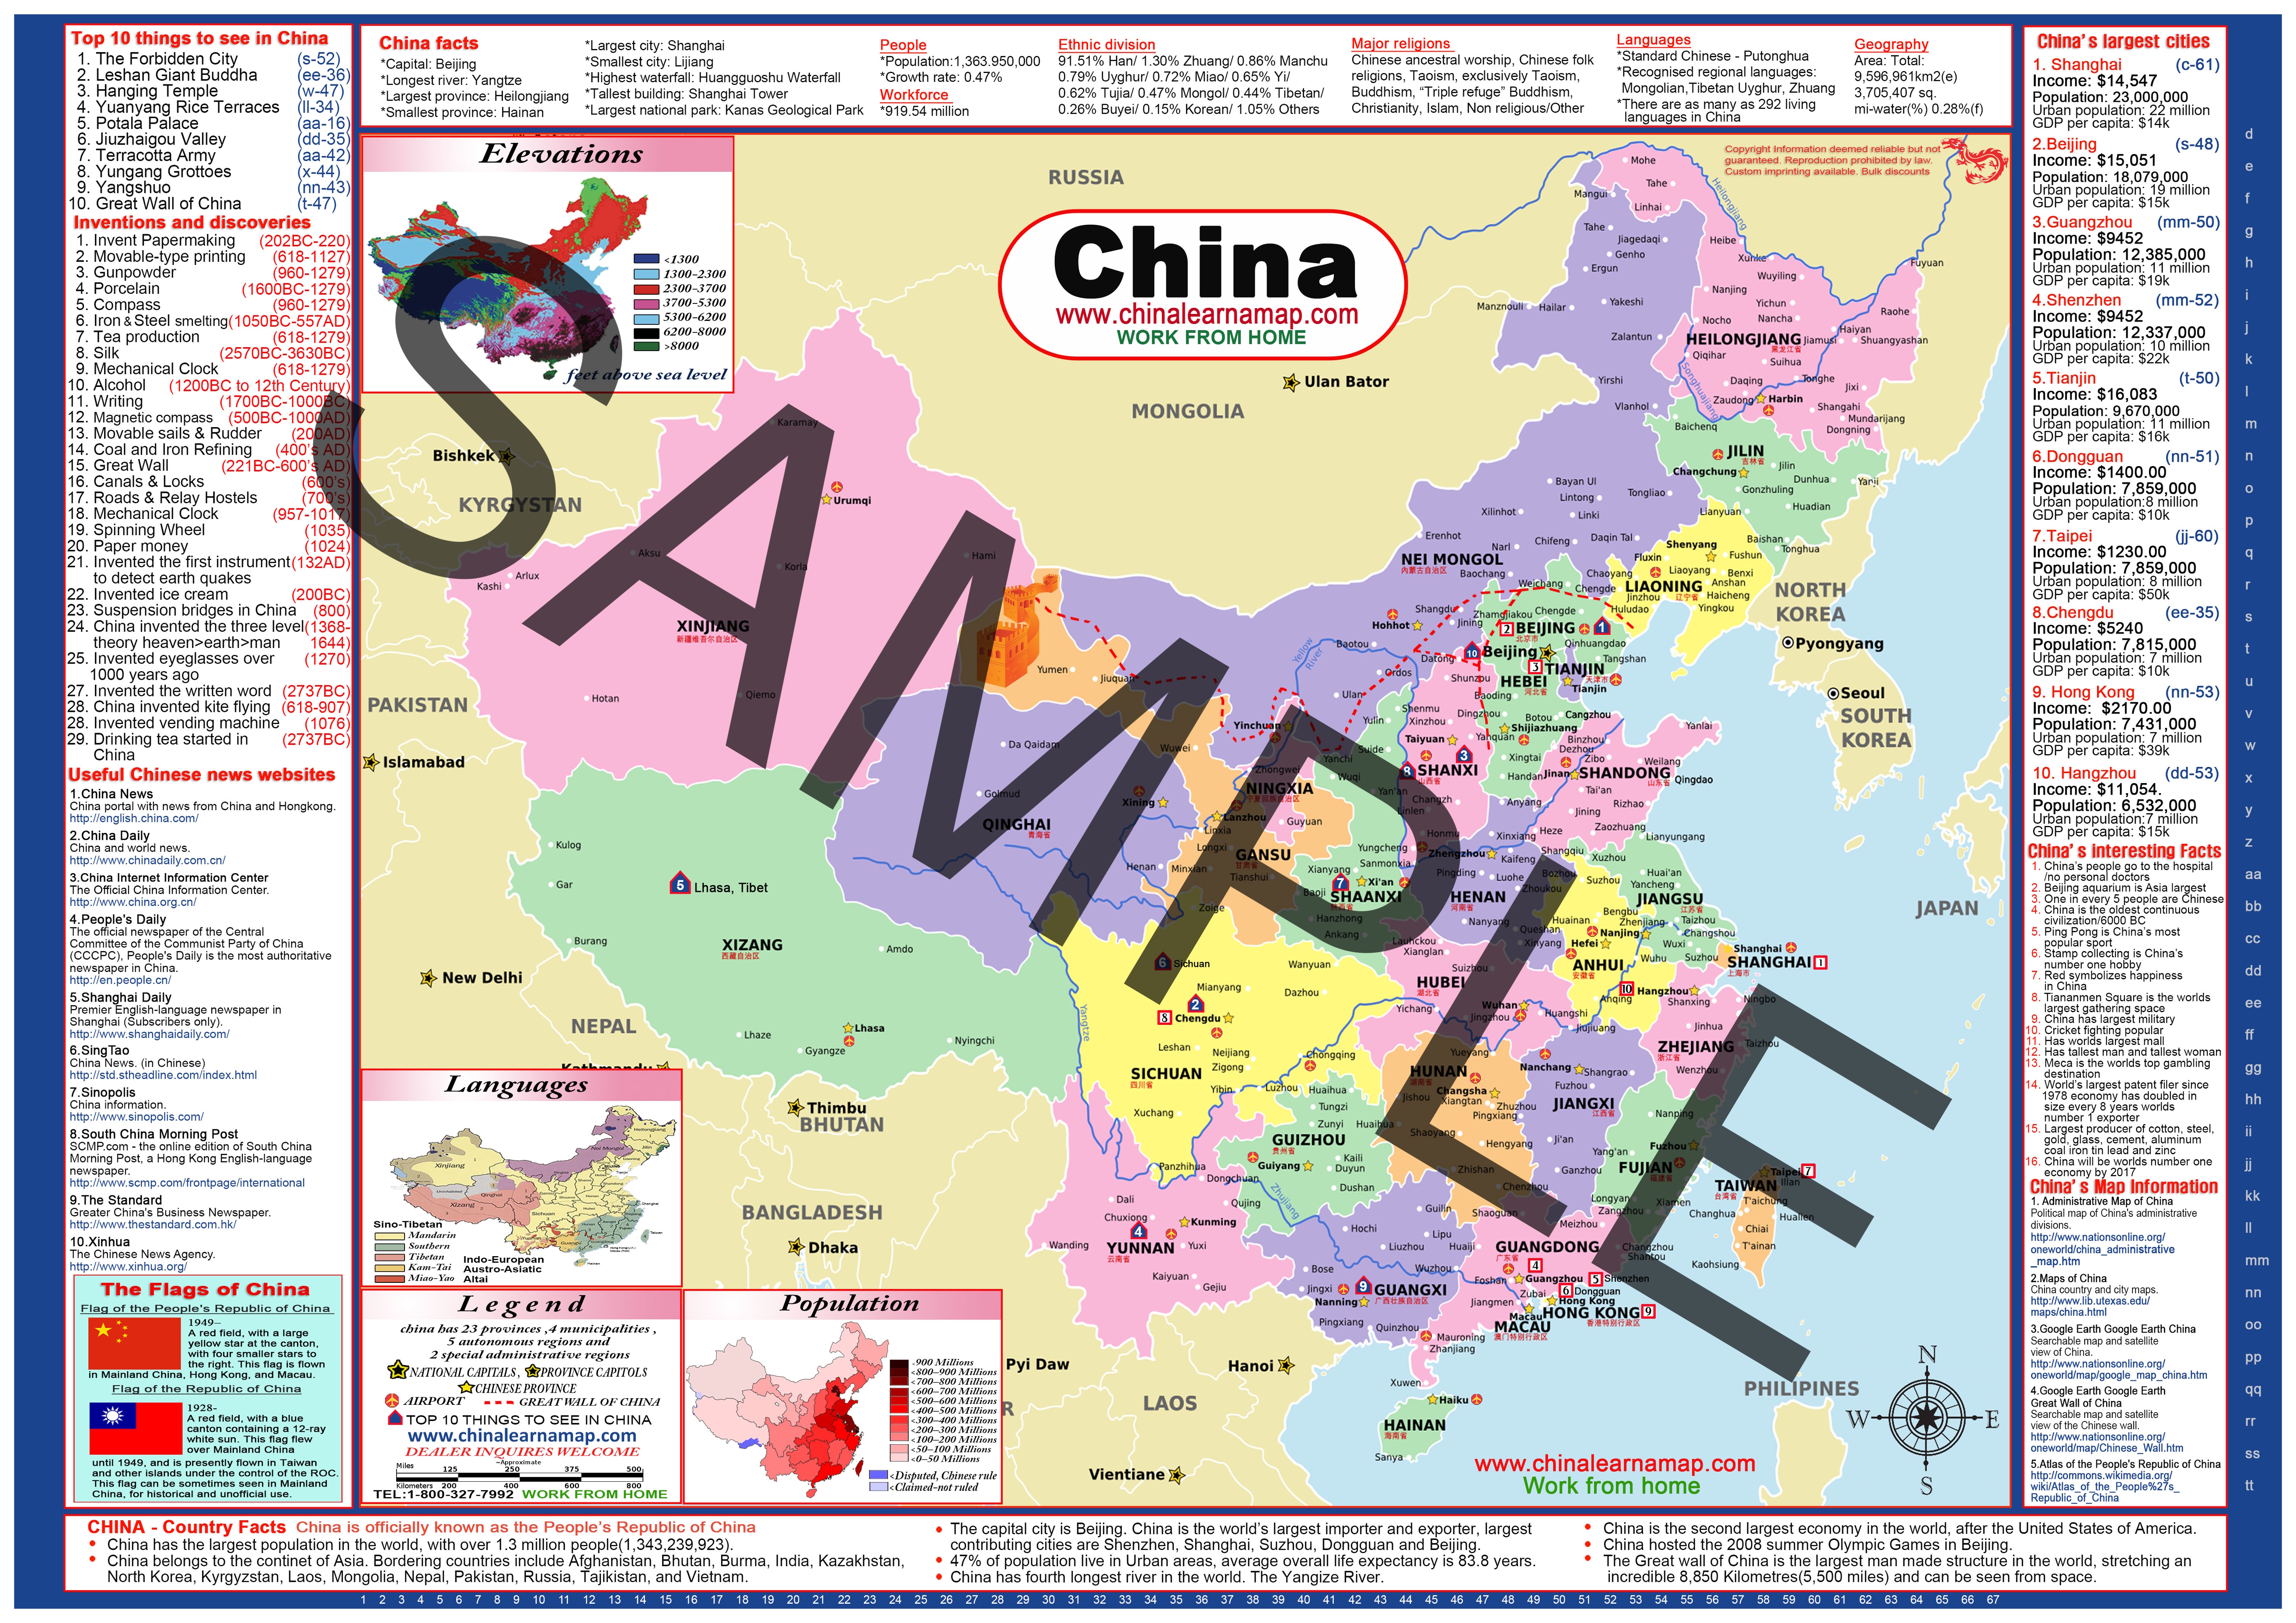 Desk Map Features Map Of Mainland China on map of the republic of china, map of geography china, matsu islands, map of korea and china, latest entertainment news china, map of smog in china, map of southern china, old world map china, map of south china sea, chinese civil war, mountain ranges map of china, south china sea, map of india and china, map of china ports, map of china with cities, shenzhen china, hong kong and mainland china, map of communist china, map of population density china, flag of japan and china, hong kong island china, chinese in china, sixty-four villages east of the river, map of southeast china,